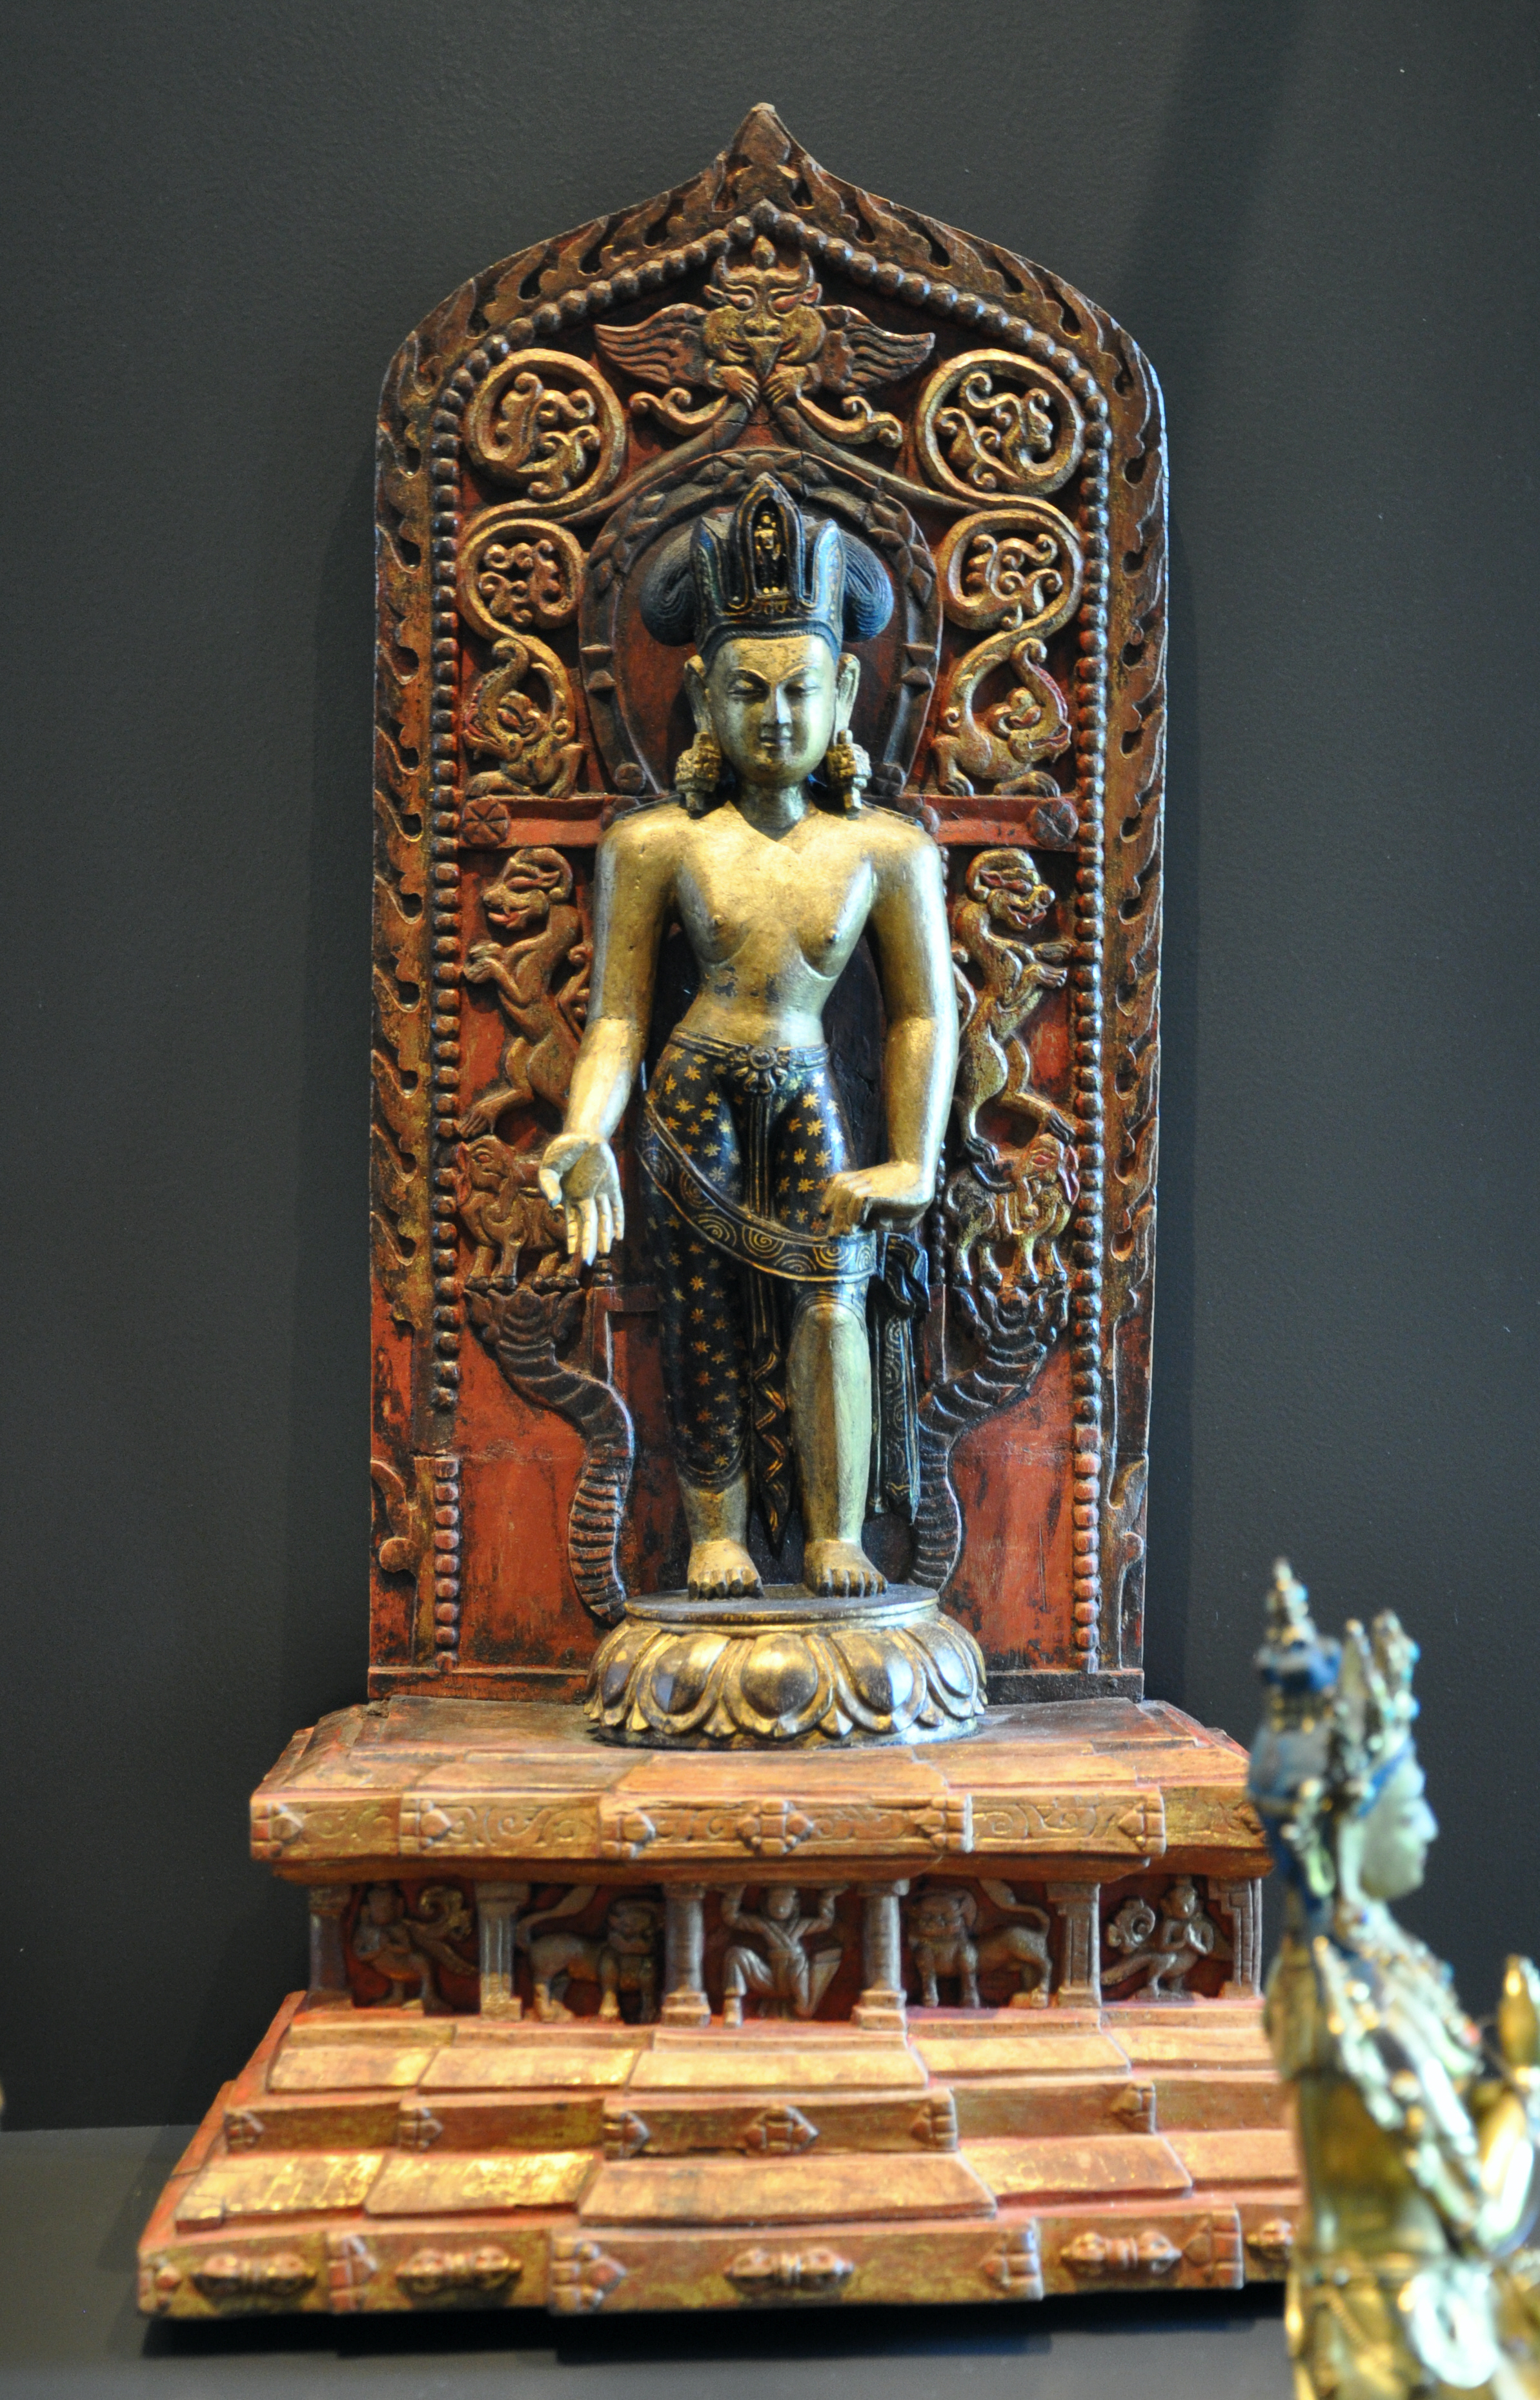 A statue of Arya-Avalokiteshvara at a museum in Zurich. Photo credit: Andreas Praefcke/Wikimedia Commons [Public Domain].